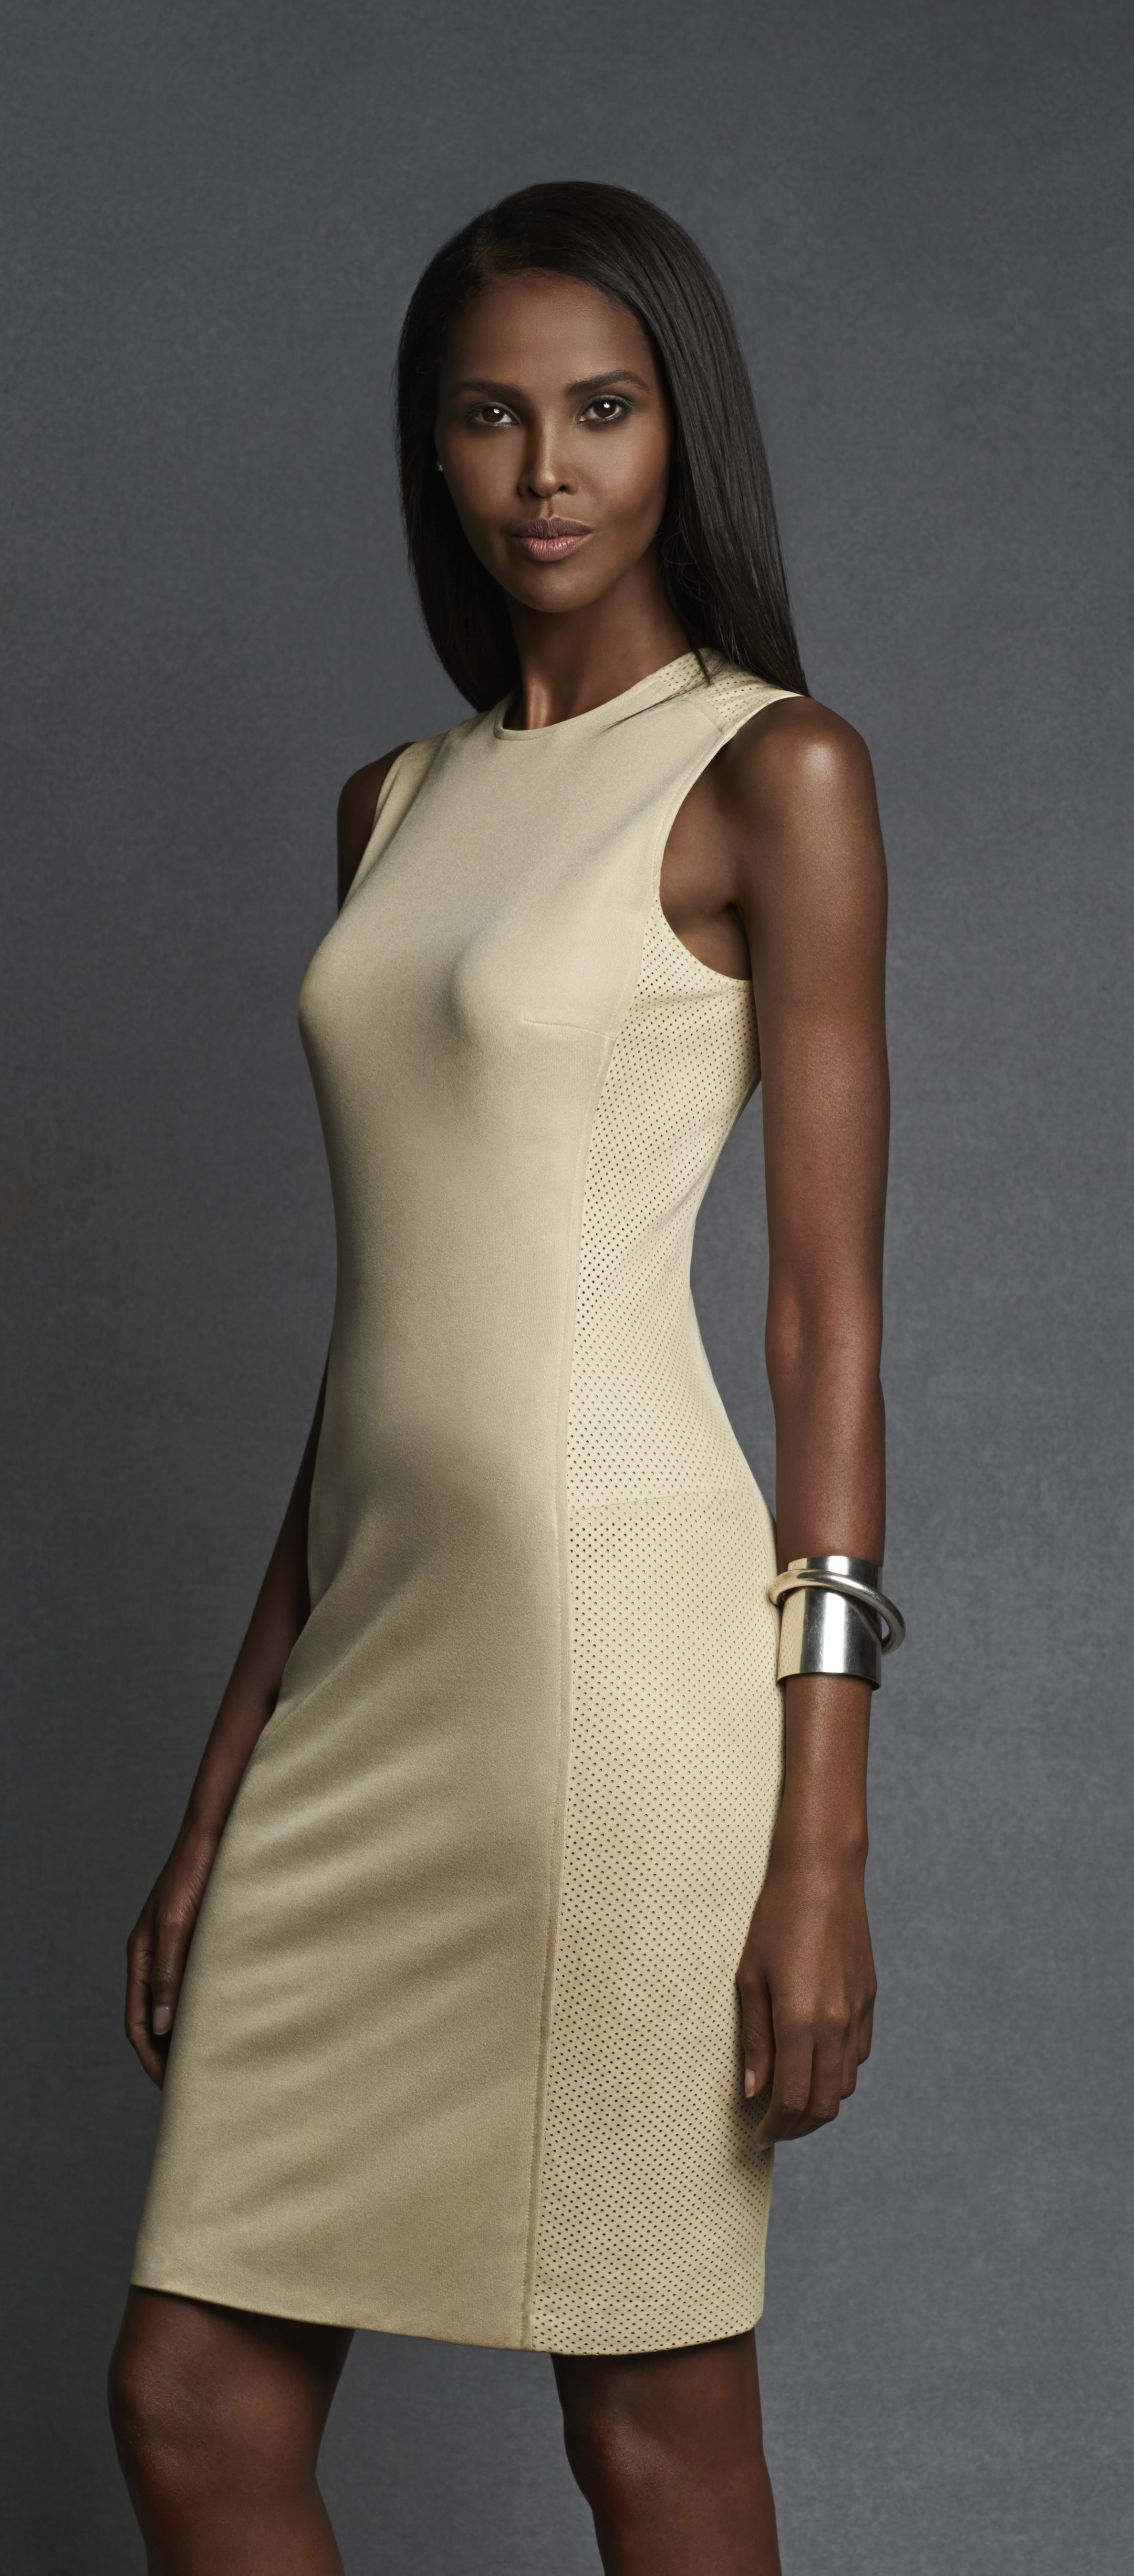 Ralph Lauren Black Label: Our modern suede Taryn dress is crafted from luxe body-skimming jersey and features a supple perforated suede panel at each shoulder and along each side